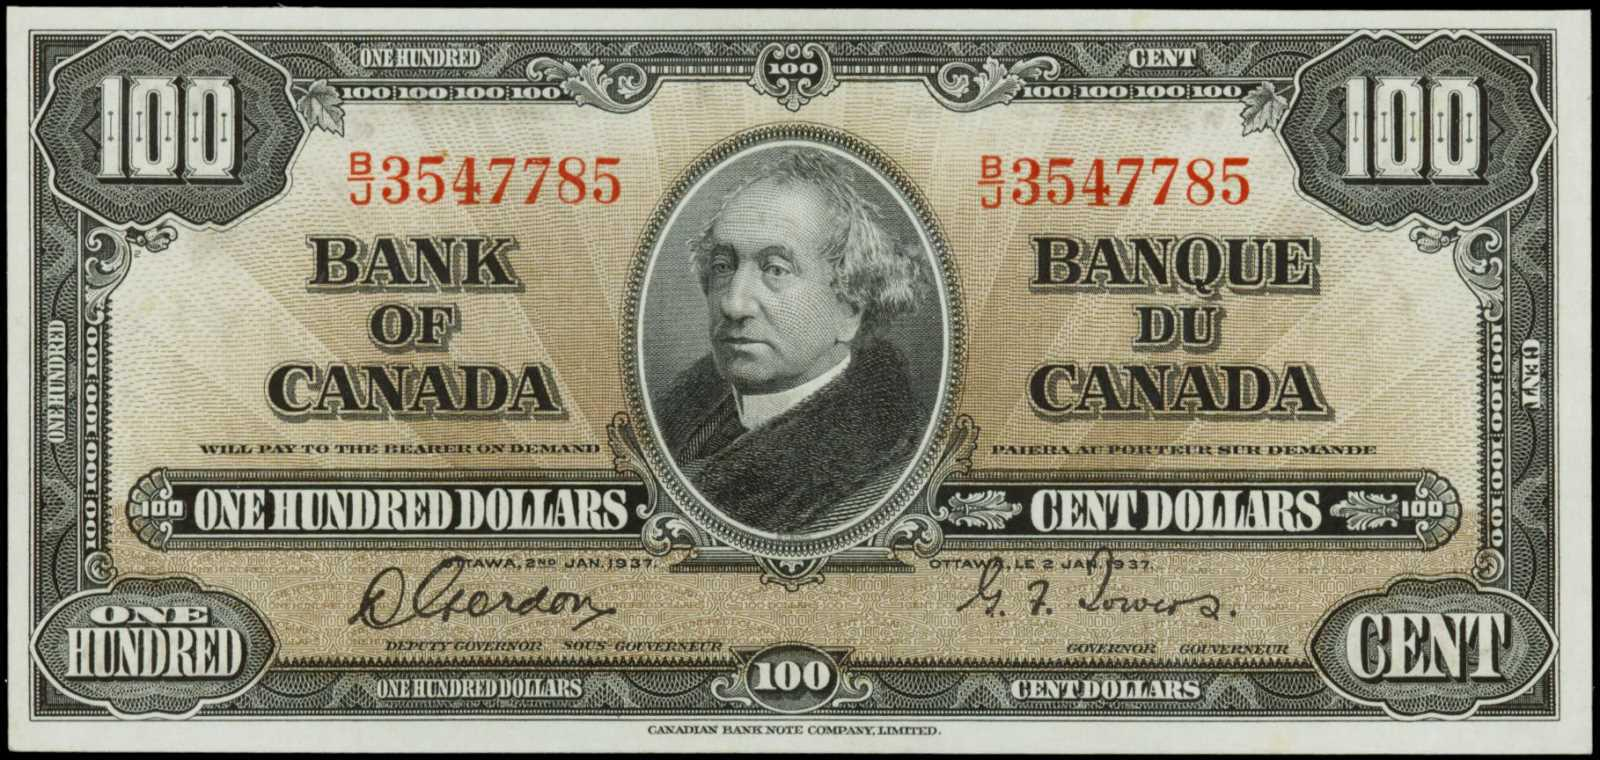 Value of 2nd Jan  1937 $100 Bill from The Bank of Canada